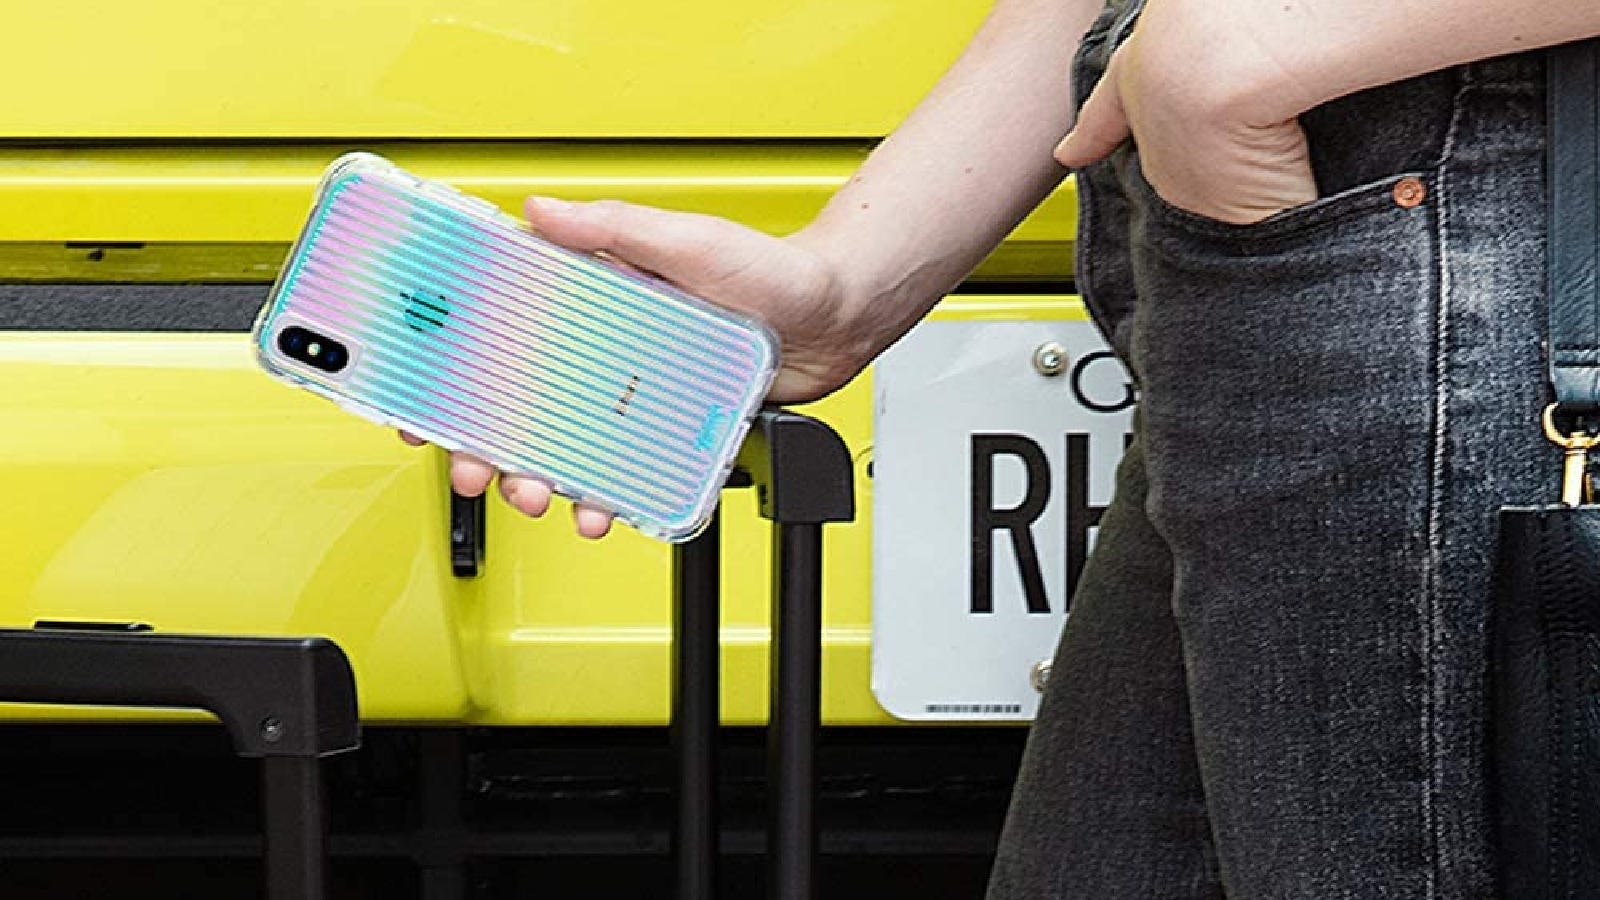 A woman holds her iPhone in its shiny and colorful case.